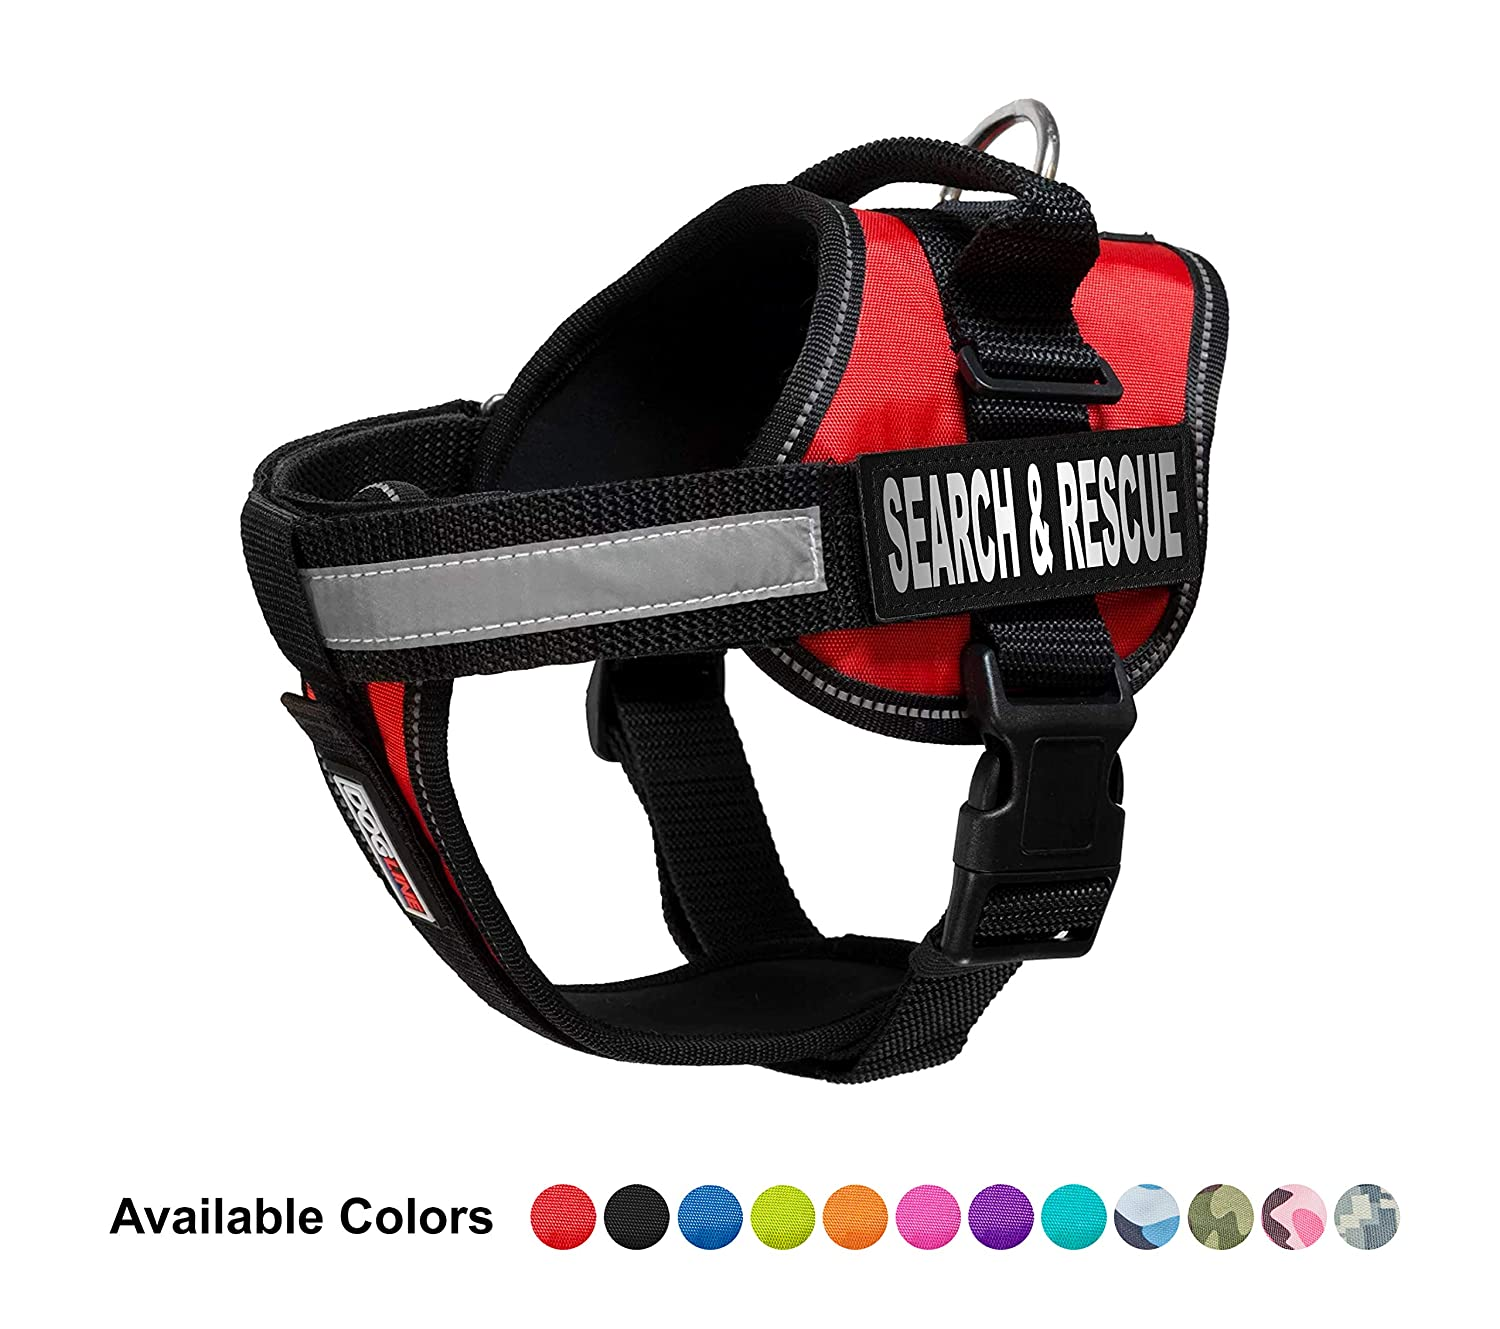 Red Medium (22\ Red Medium (22\ Dogline Unimax Multi-Purpose Vest Harness for Dogs and 2 Removable Search and Rescue Patches, Medium, Red